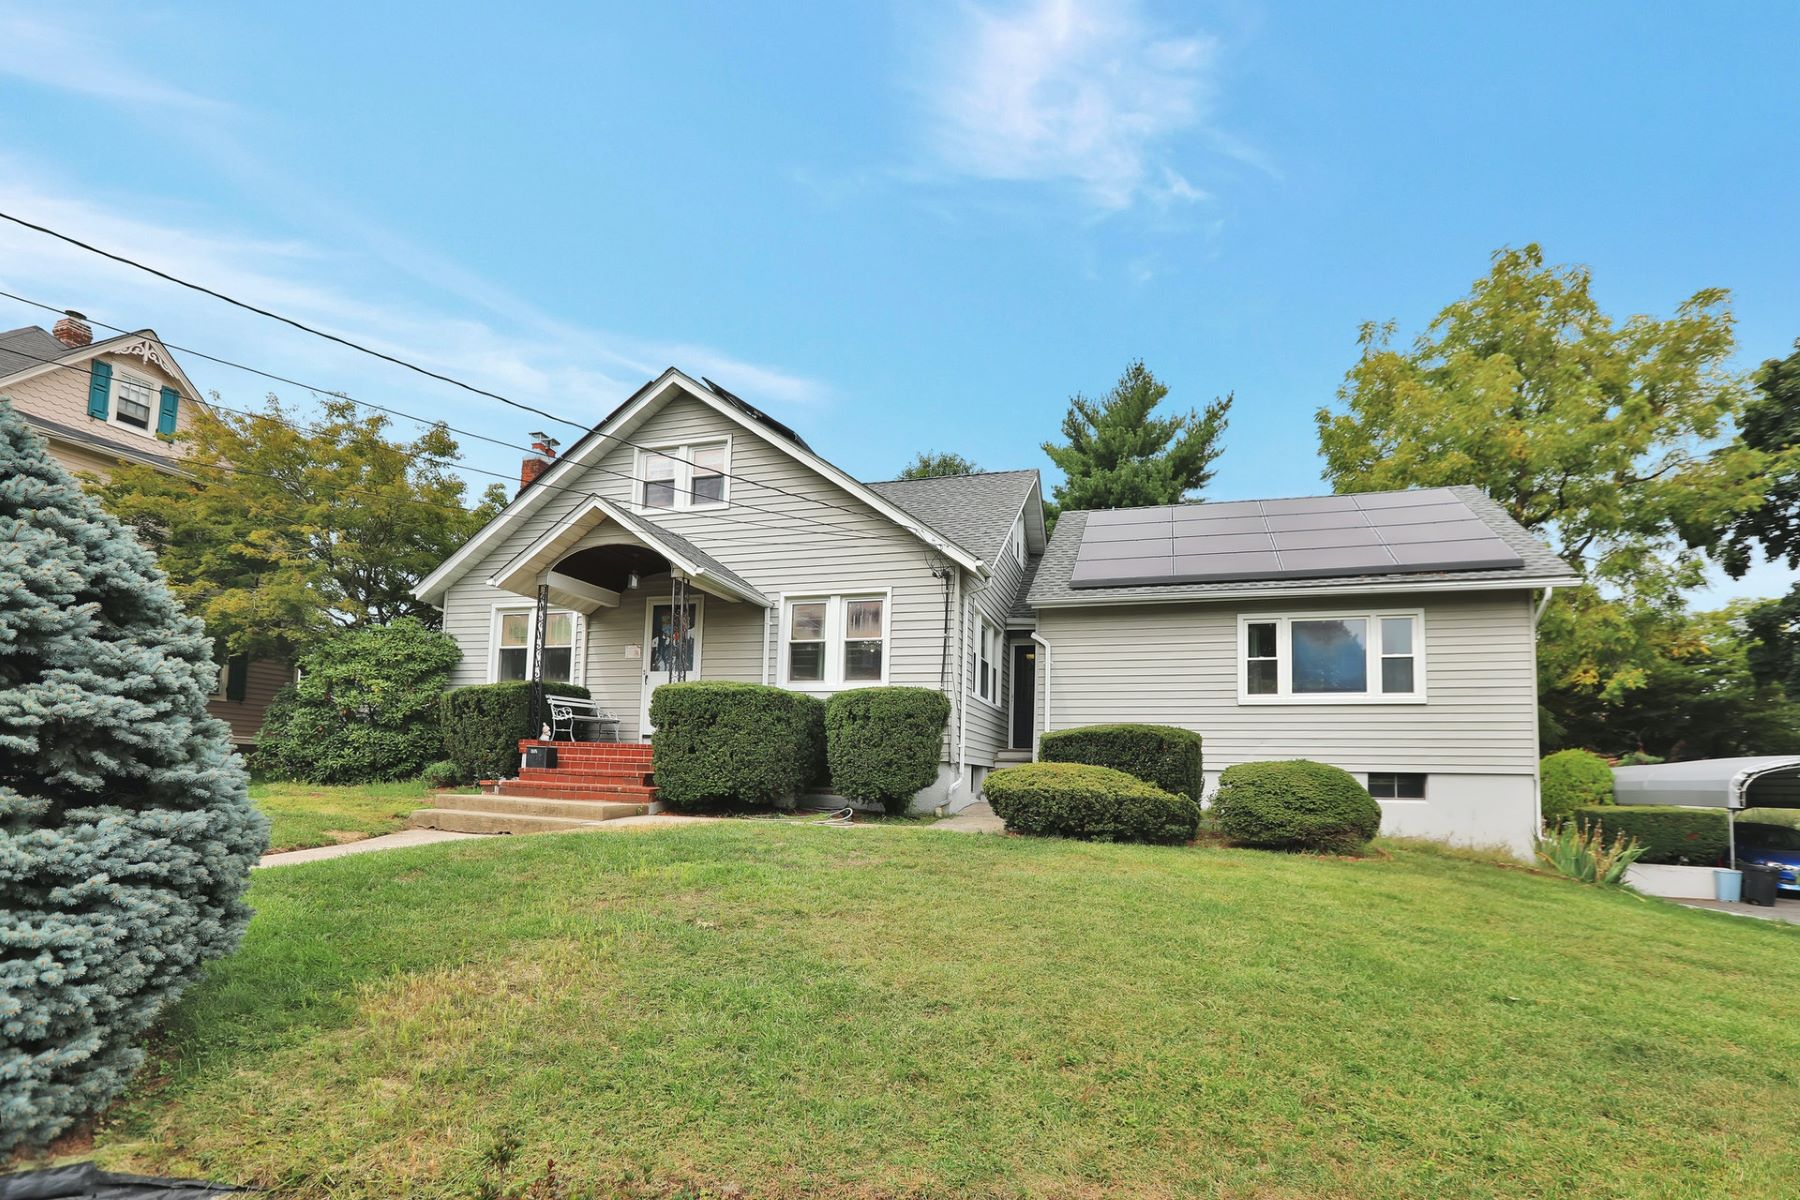 Single Family Homes for Sale at Welcome Home! 58 Larch Ave, Dumont, New Jersey 07628 United States